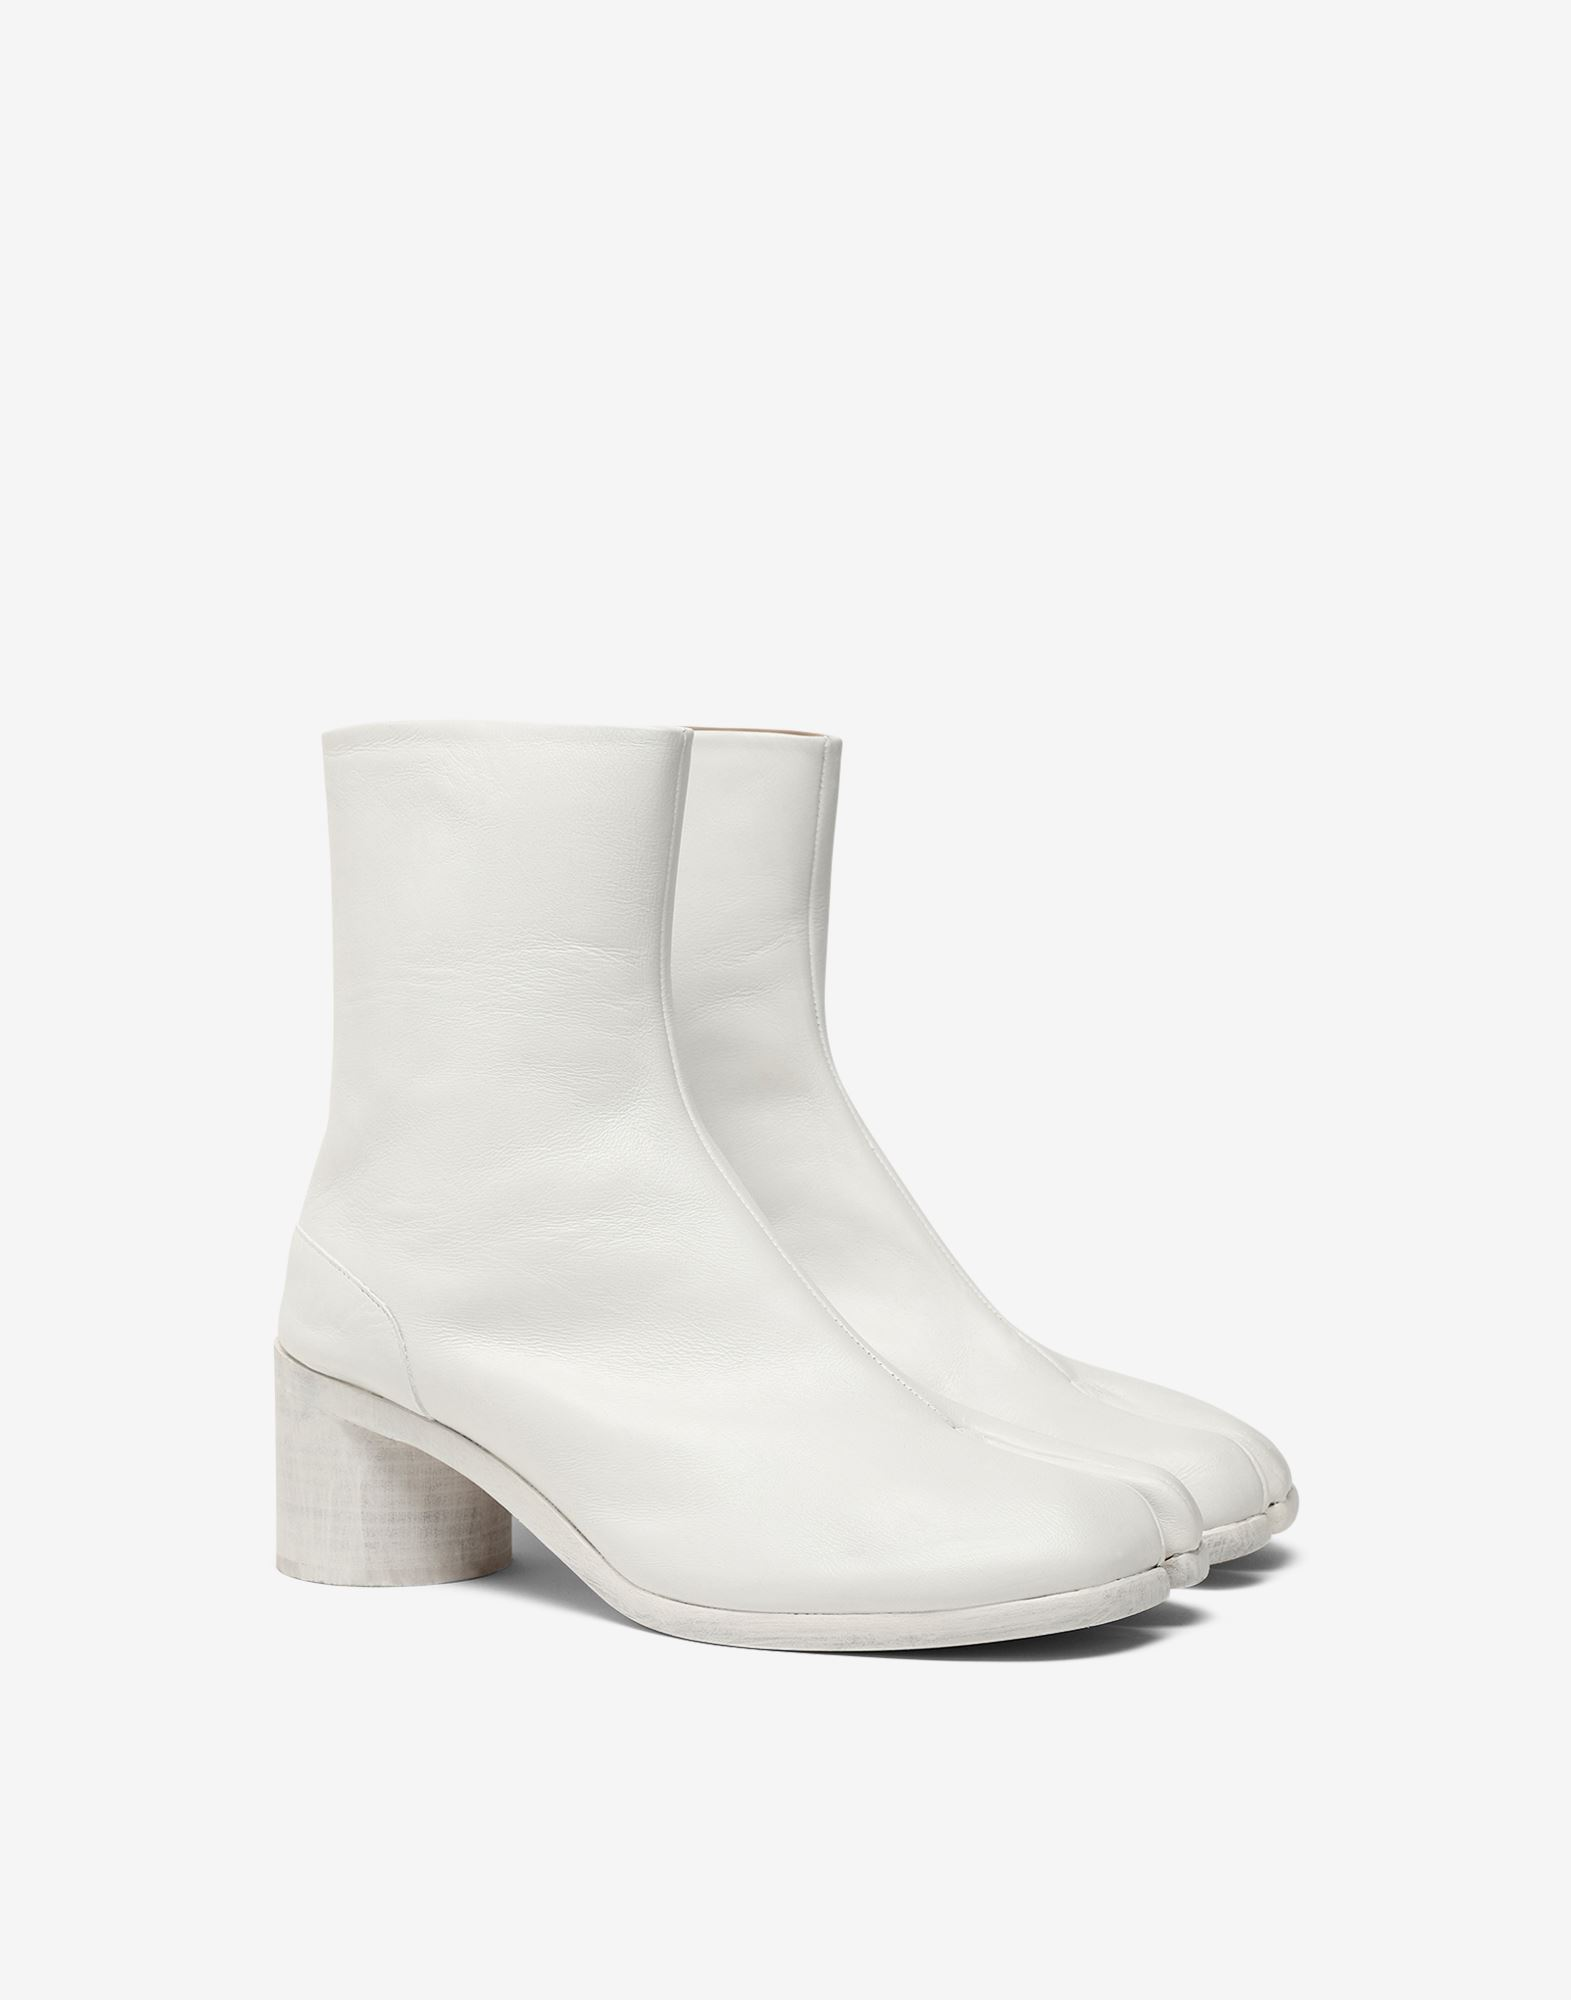 MAISON MARGIELA Painted calfskin Tabi boots Ankle boots Man r